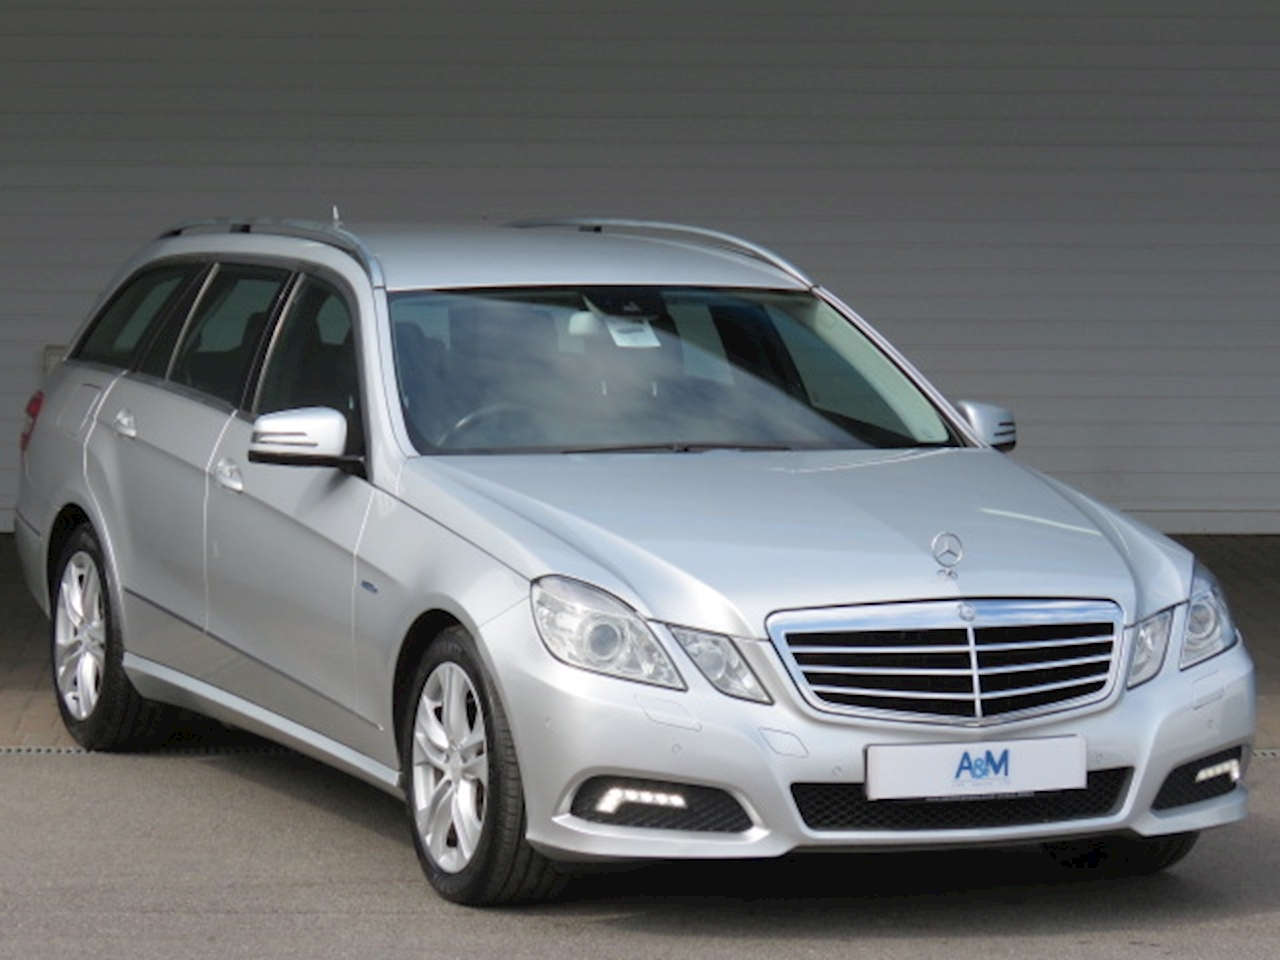 Mercedes-Benz E Class Avantgarde Estate 3.0 Auto Diesel